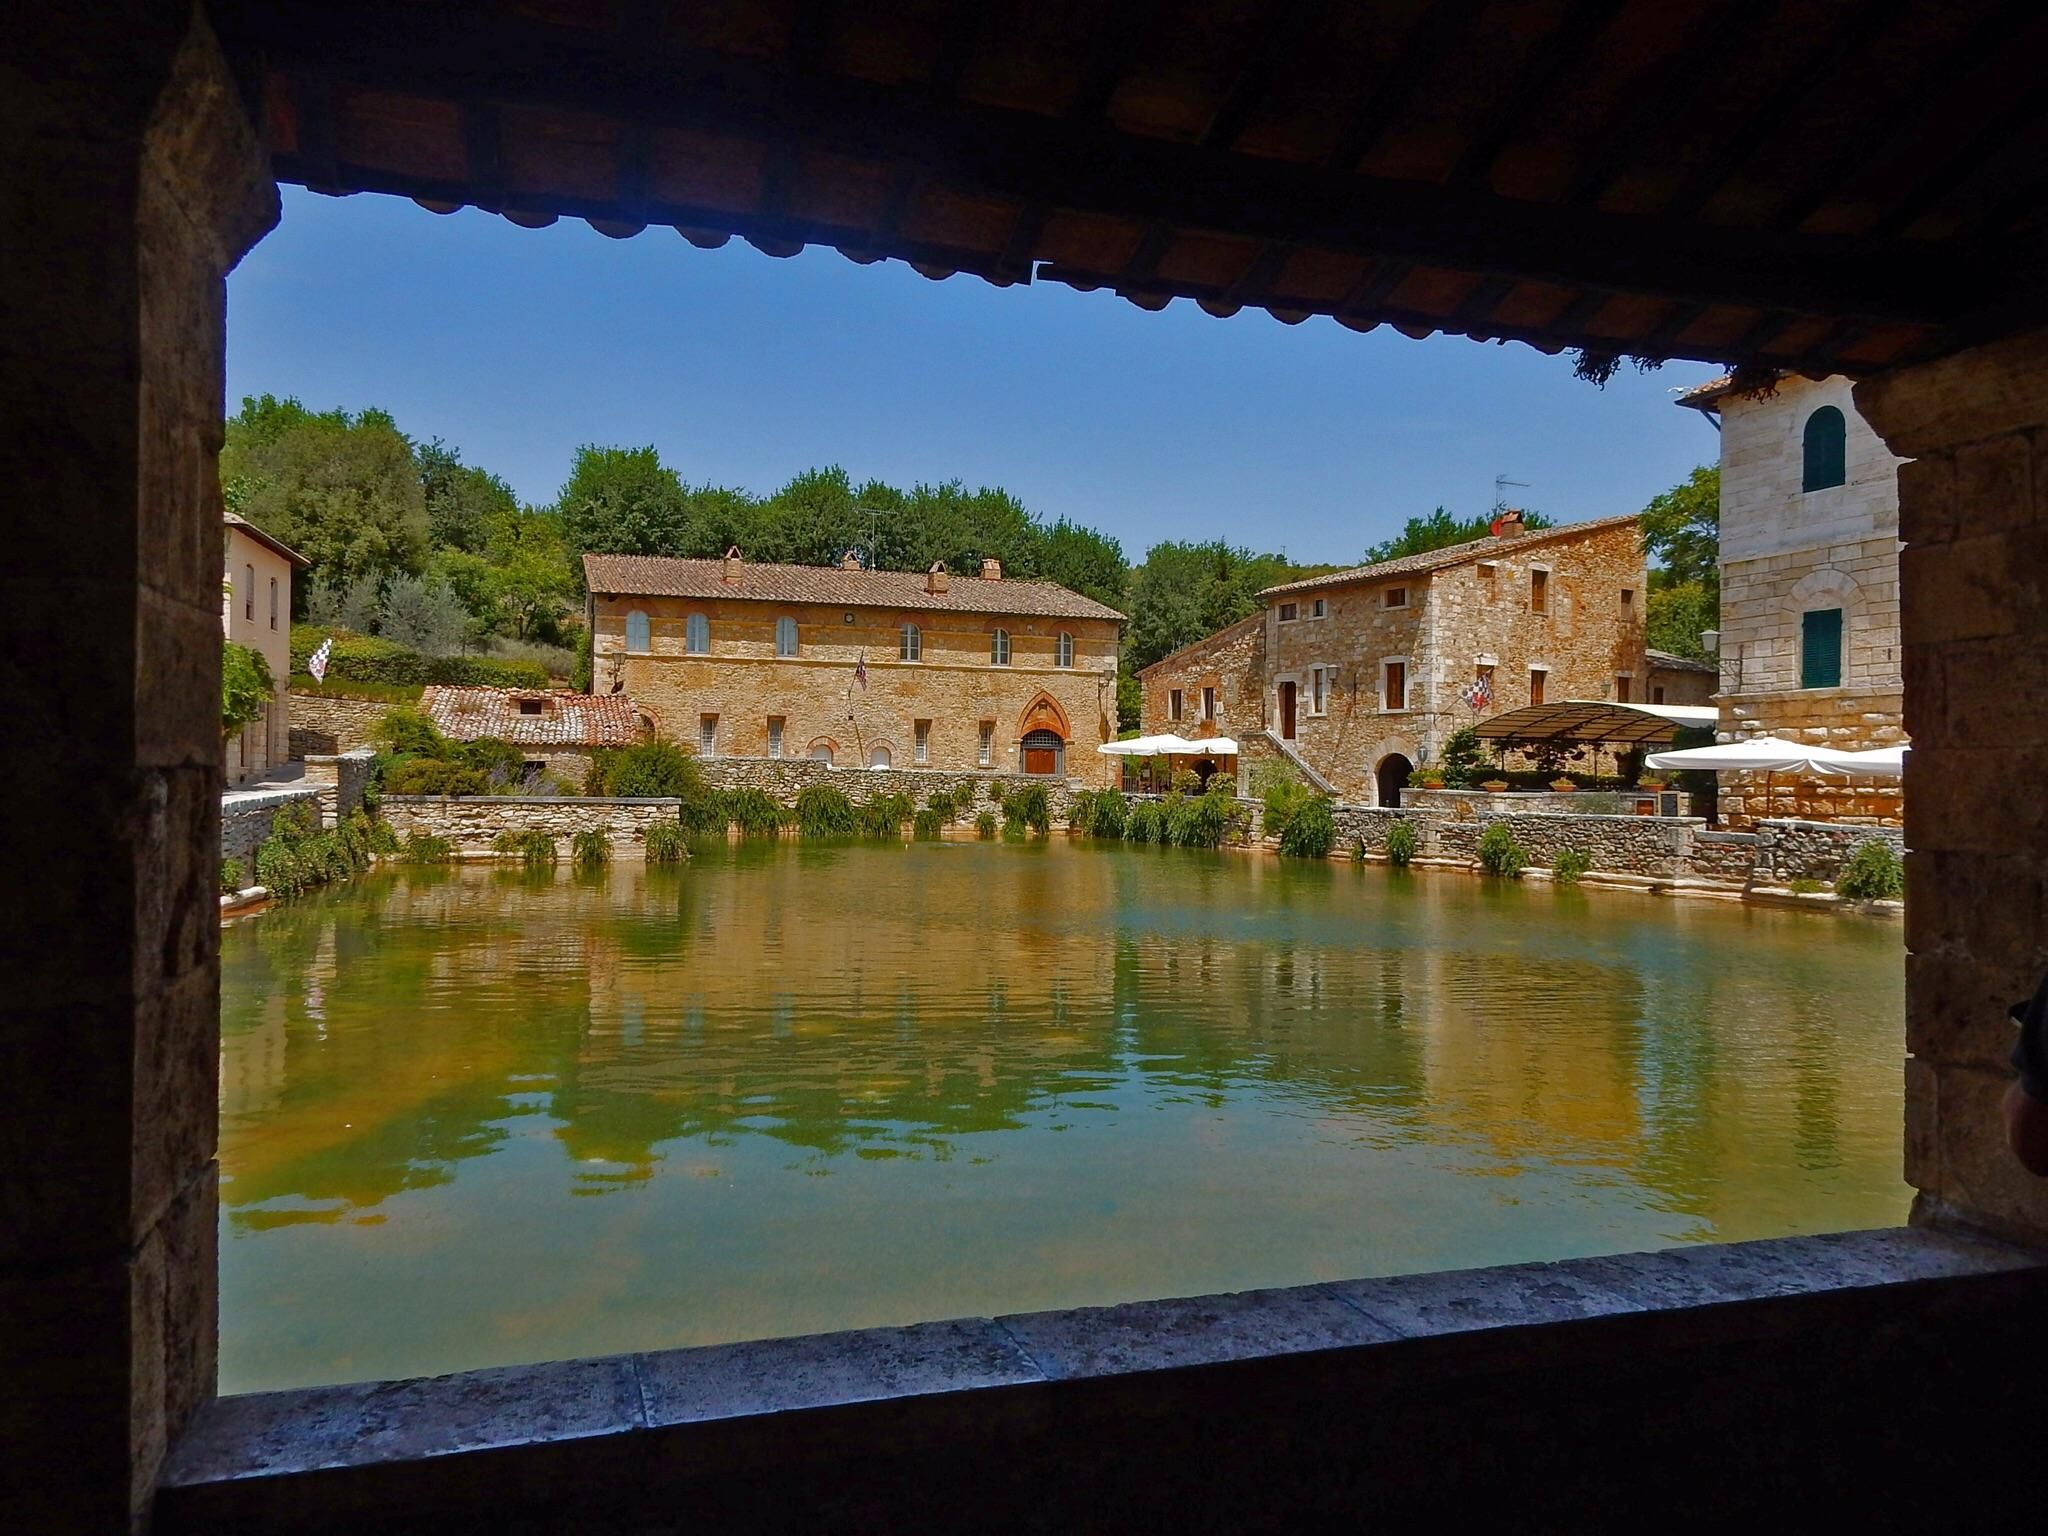 Bagno Vignoni Tuscany Italy The Huge Pool Of Warm Thermal Water